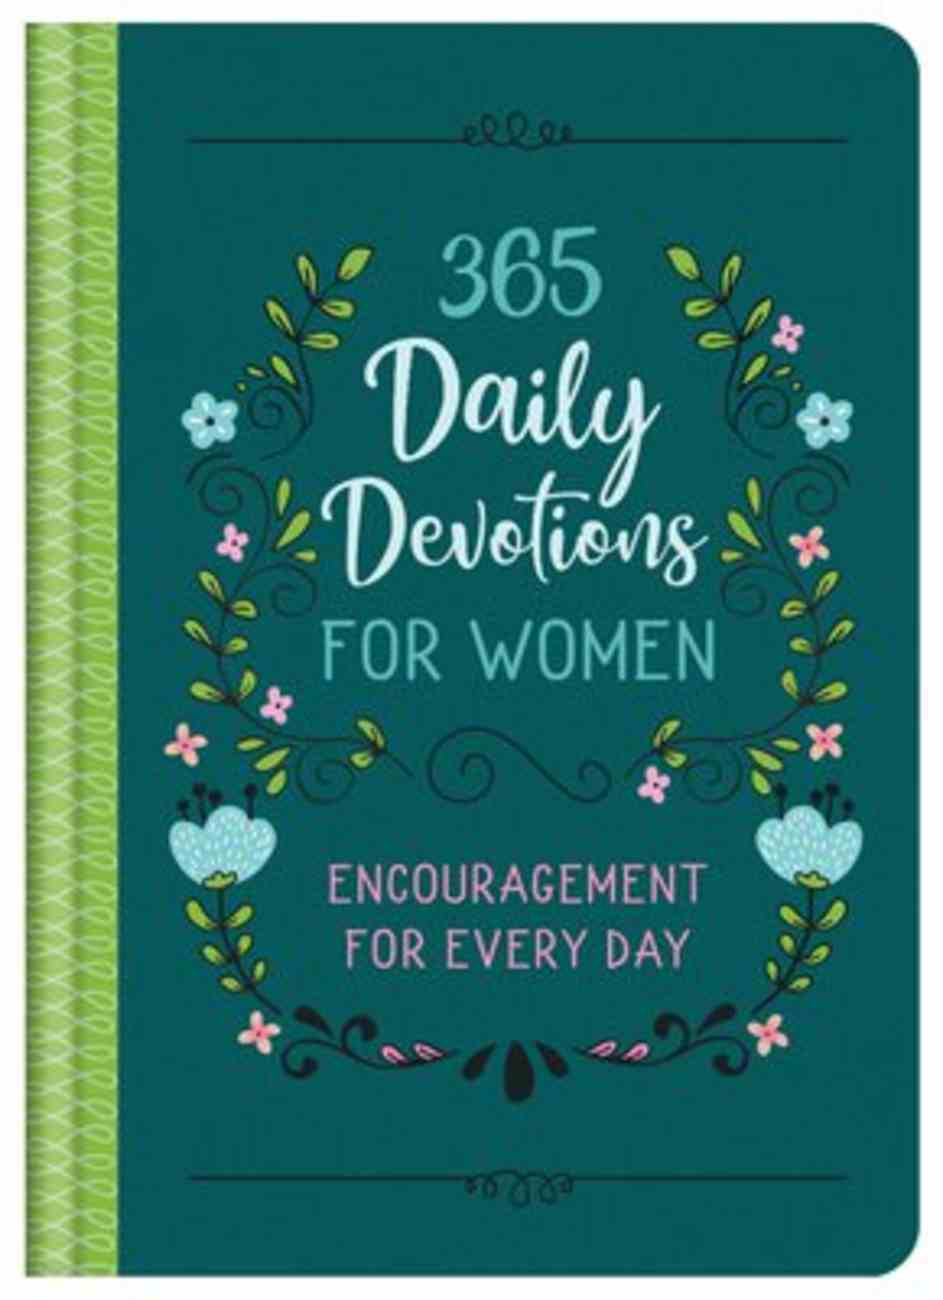 365 Daily Devotions For Women: Encouragement For Every Day Hardback